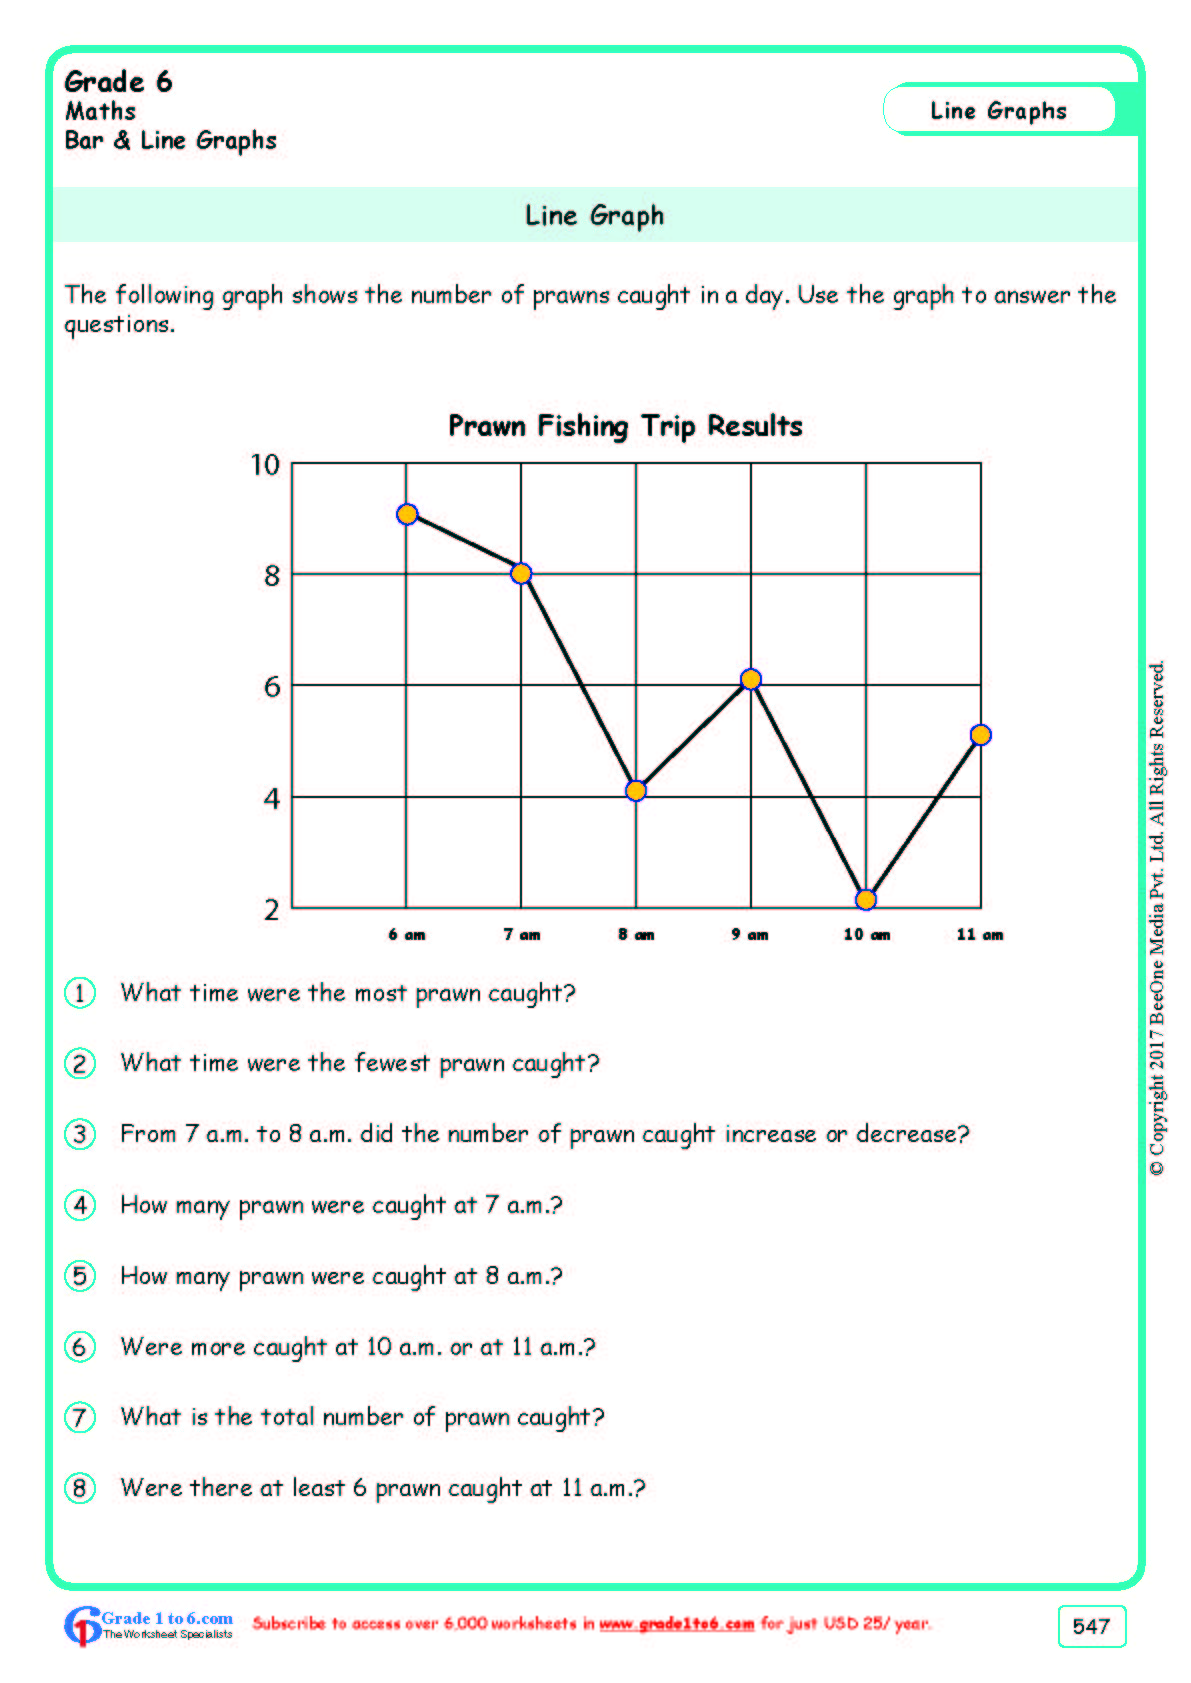 hight resolution of Grade 6 Line Graphs Worksheets www.grade1to6.com